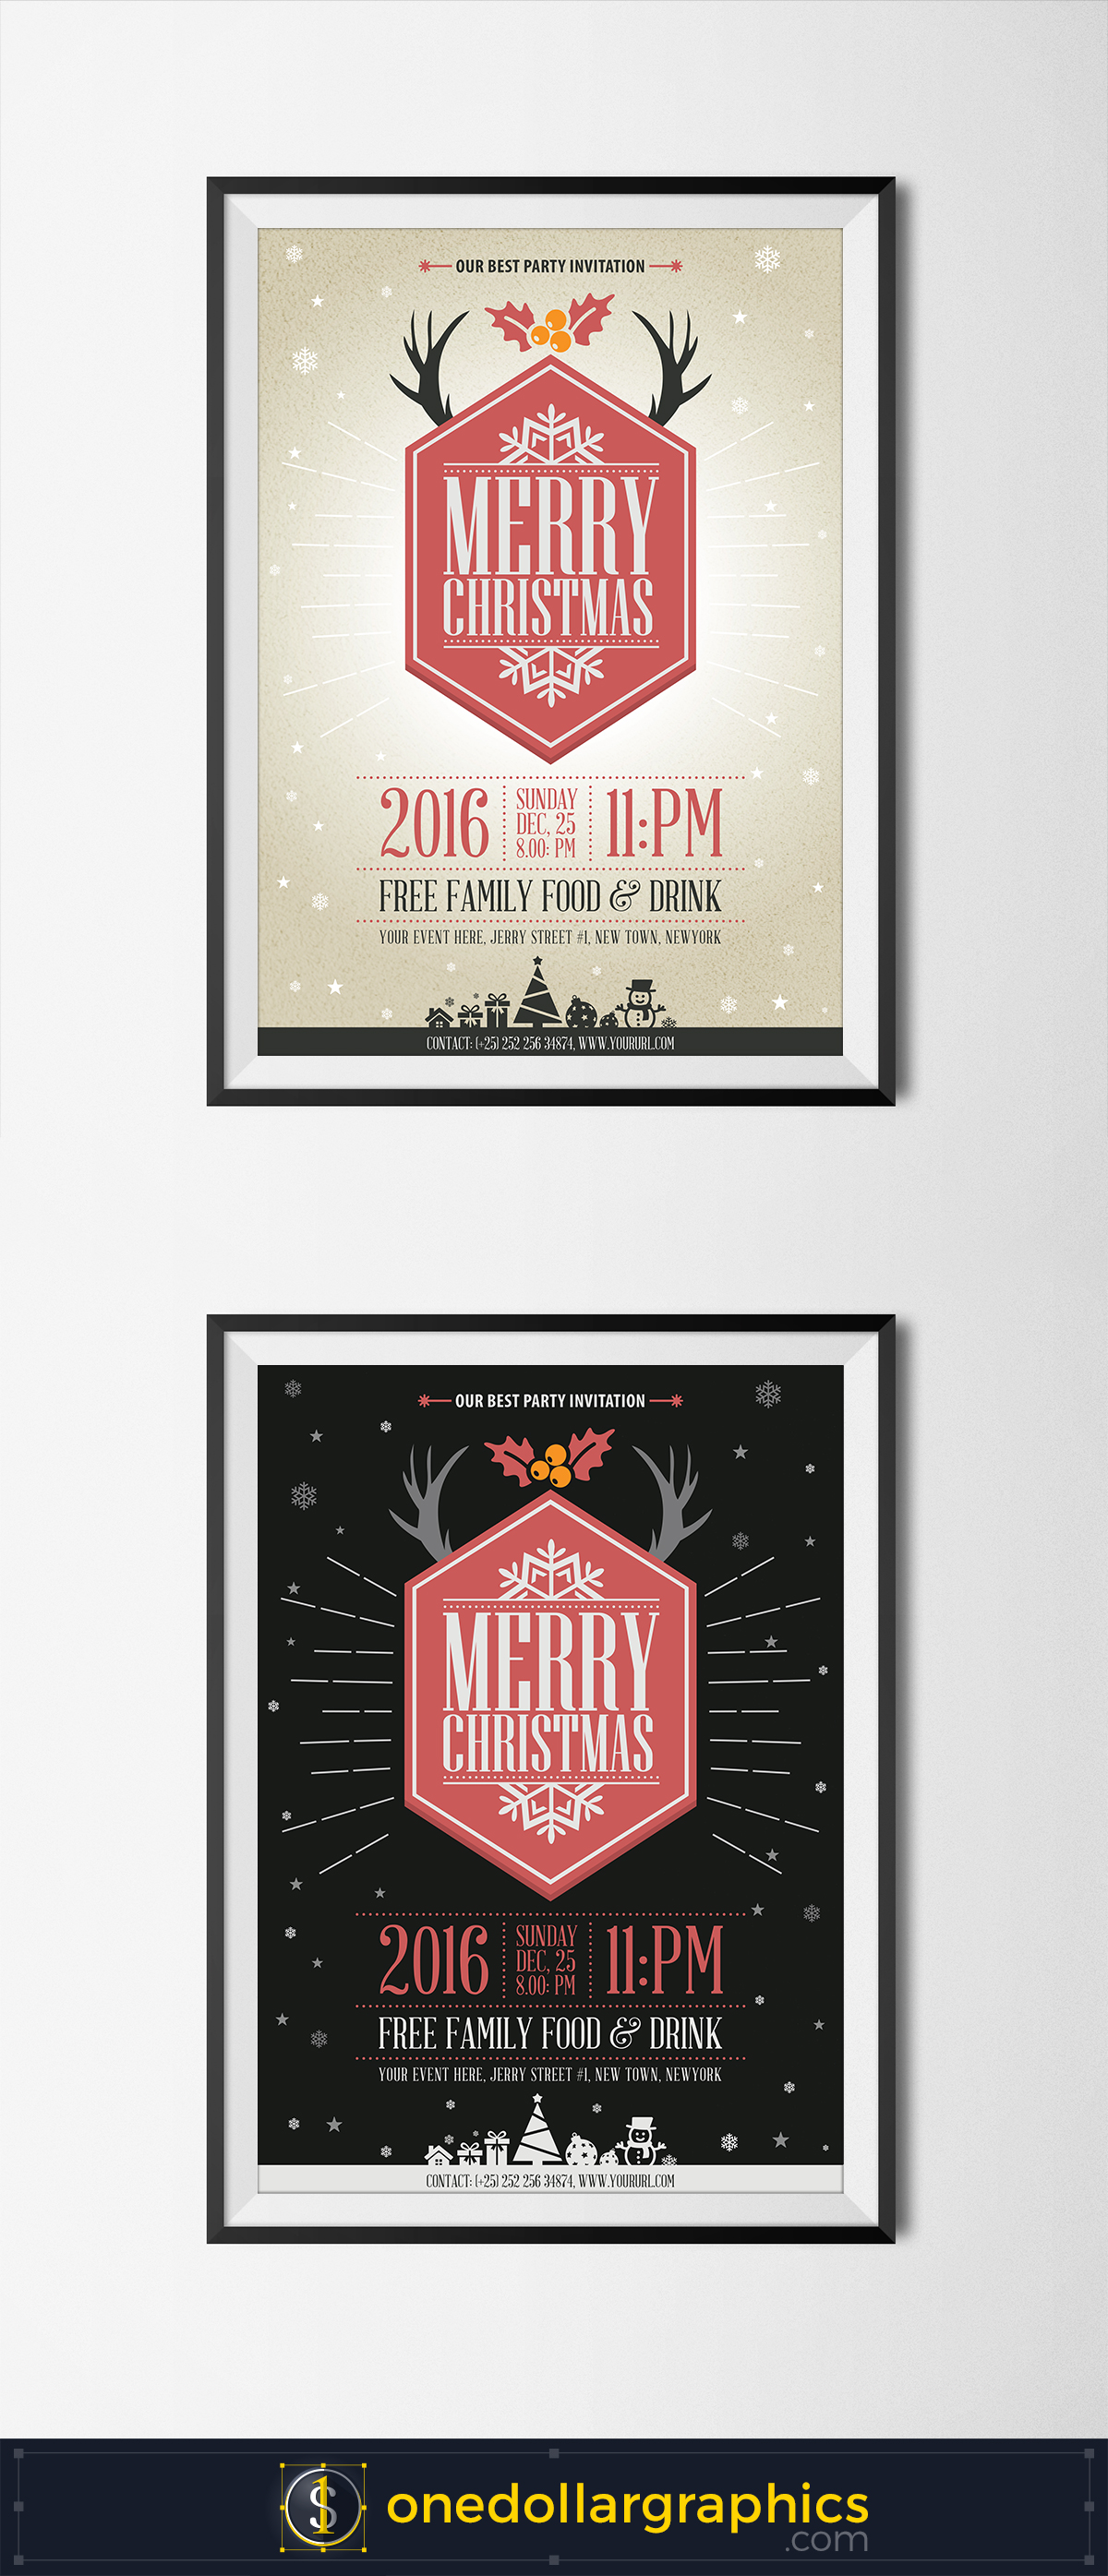 free-vintage-christmas-flyer-template-design